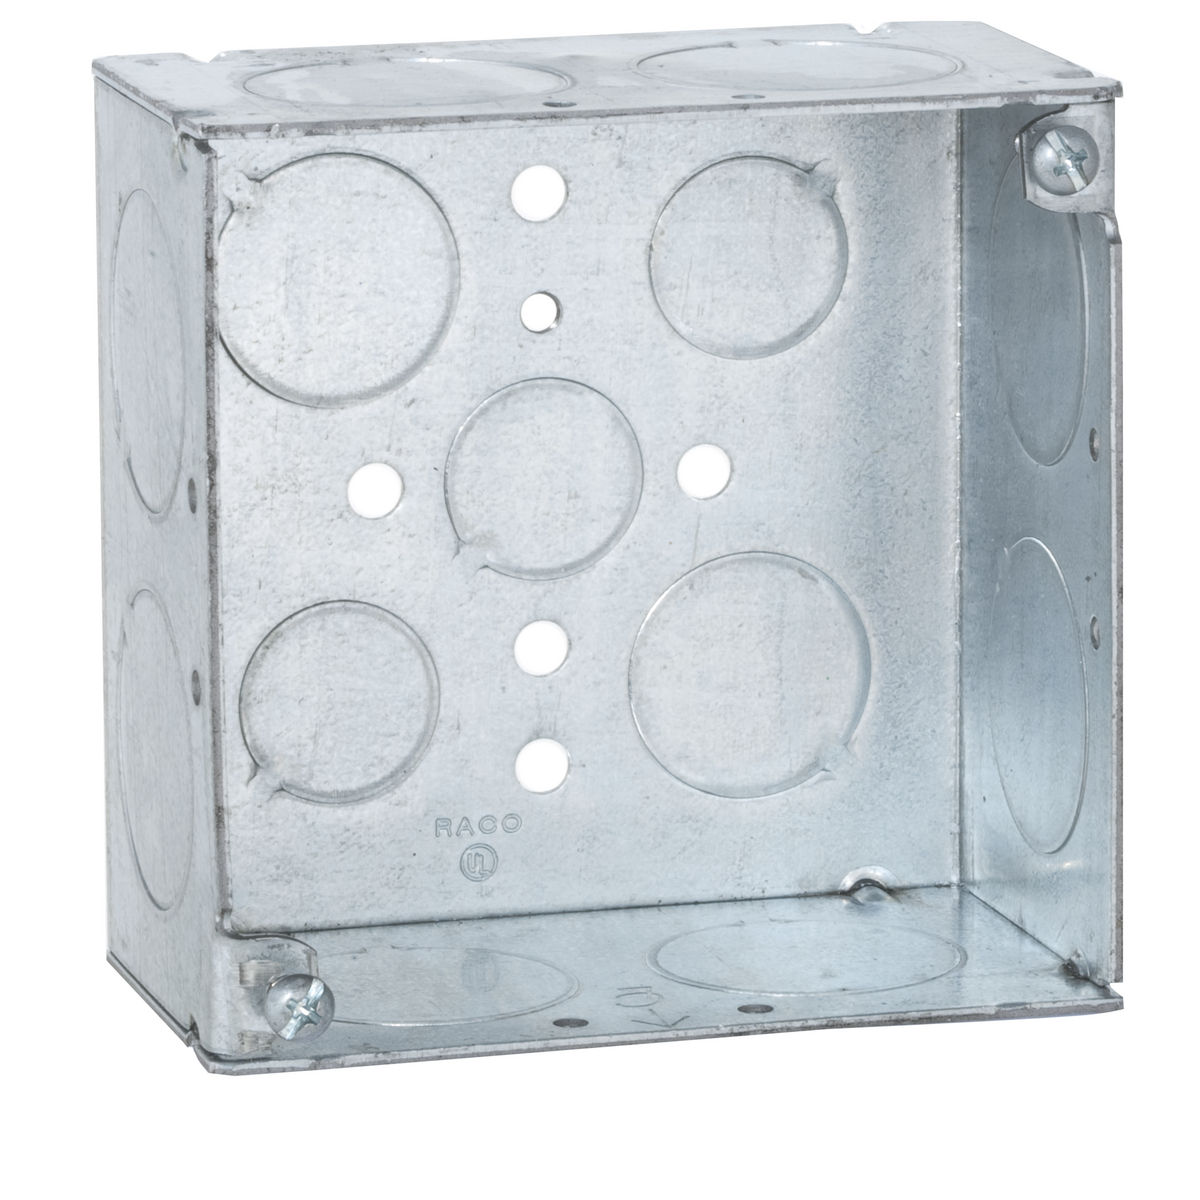 Hubbell-Raco 233 Square Box